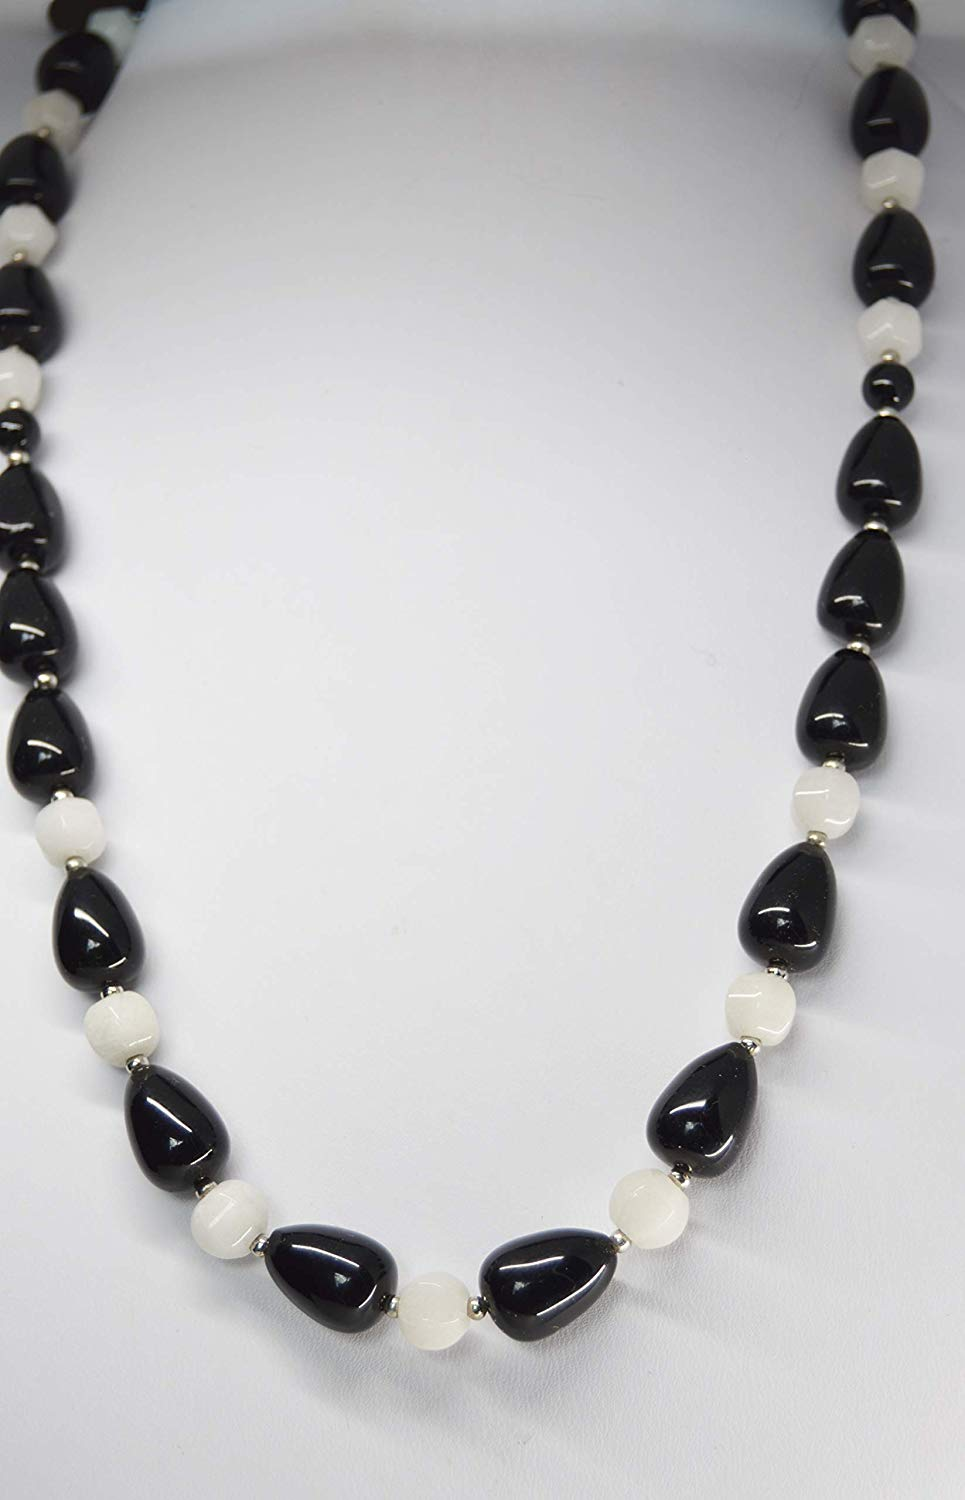 Gemstone Onyx and White Jade beaded necklace jewelry set with matching earrings Black and White